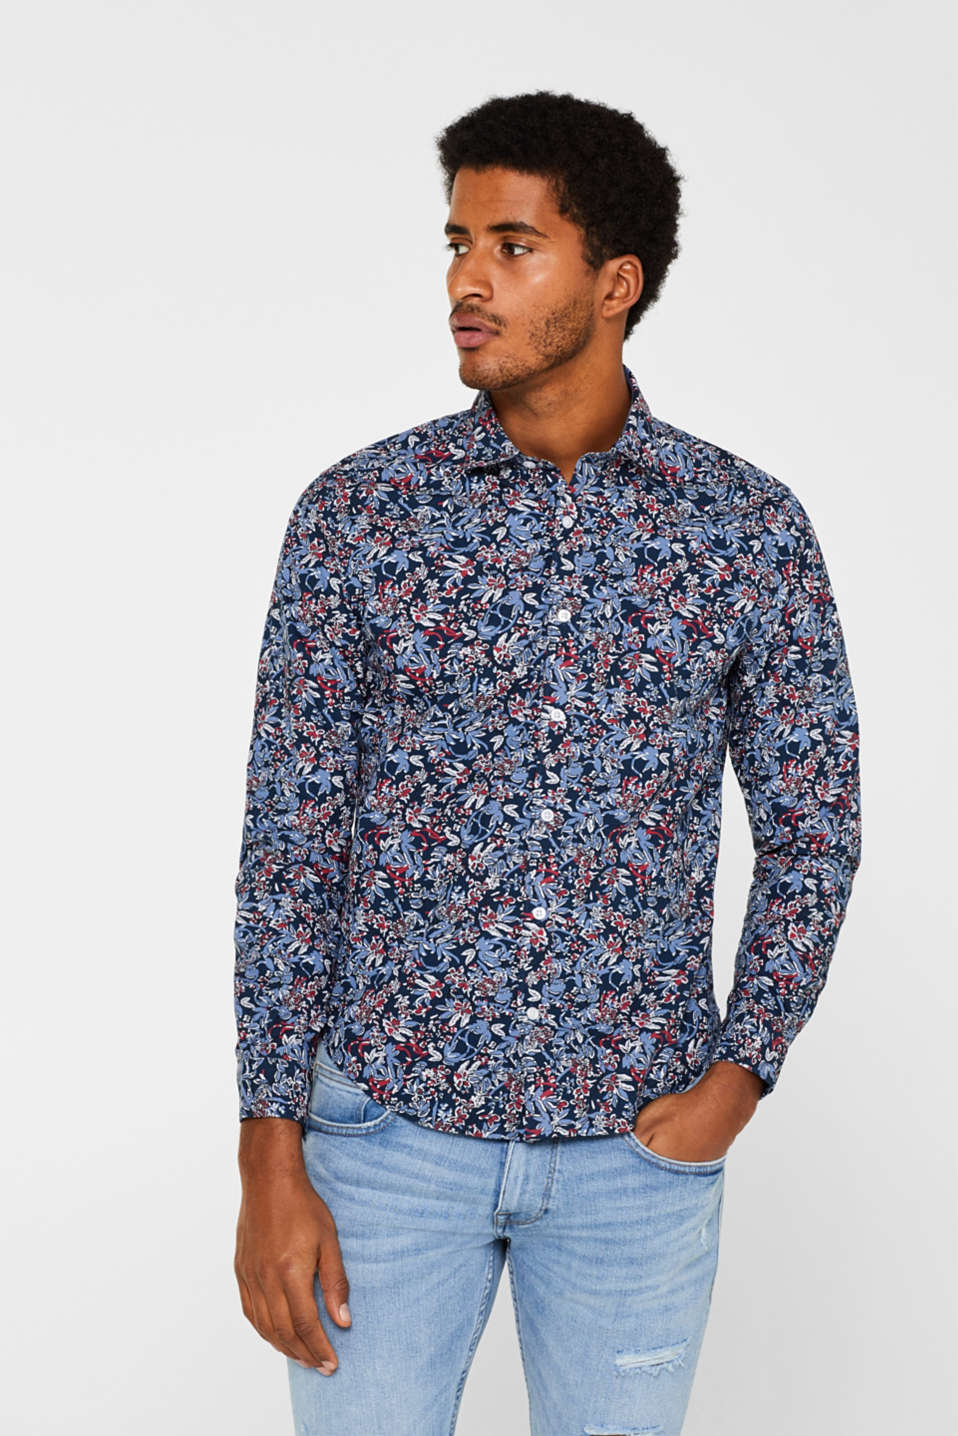 Esprit - Floral print shirt, 100% cotton